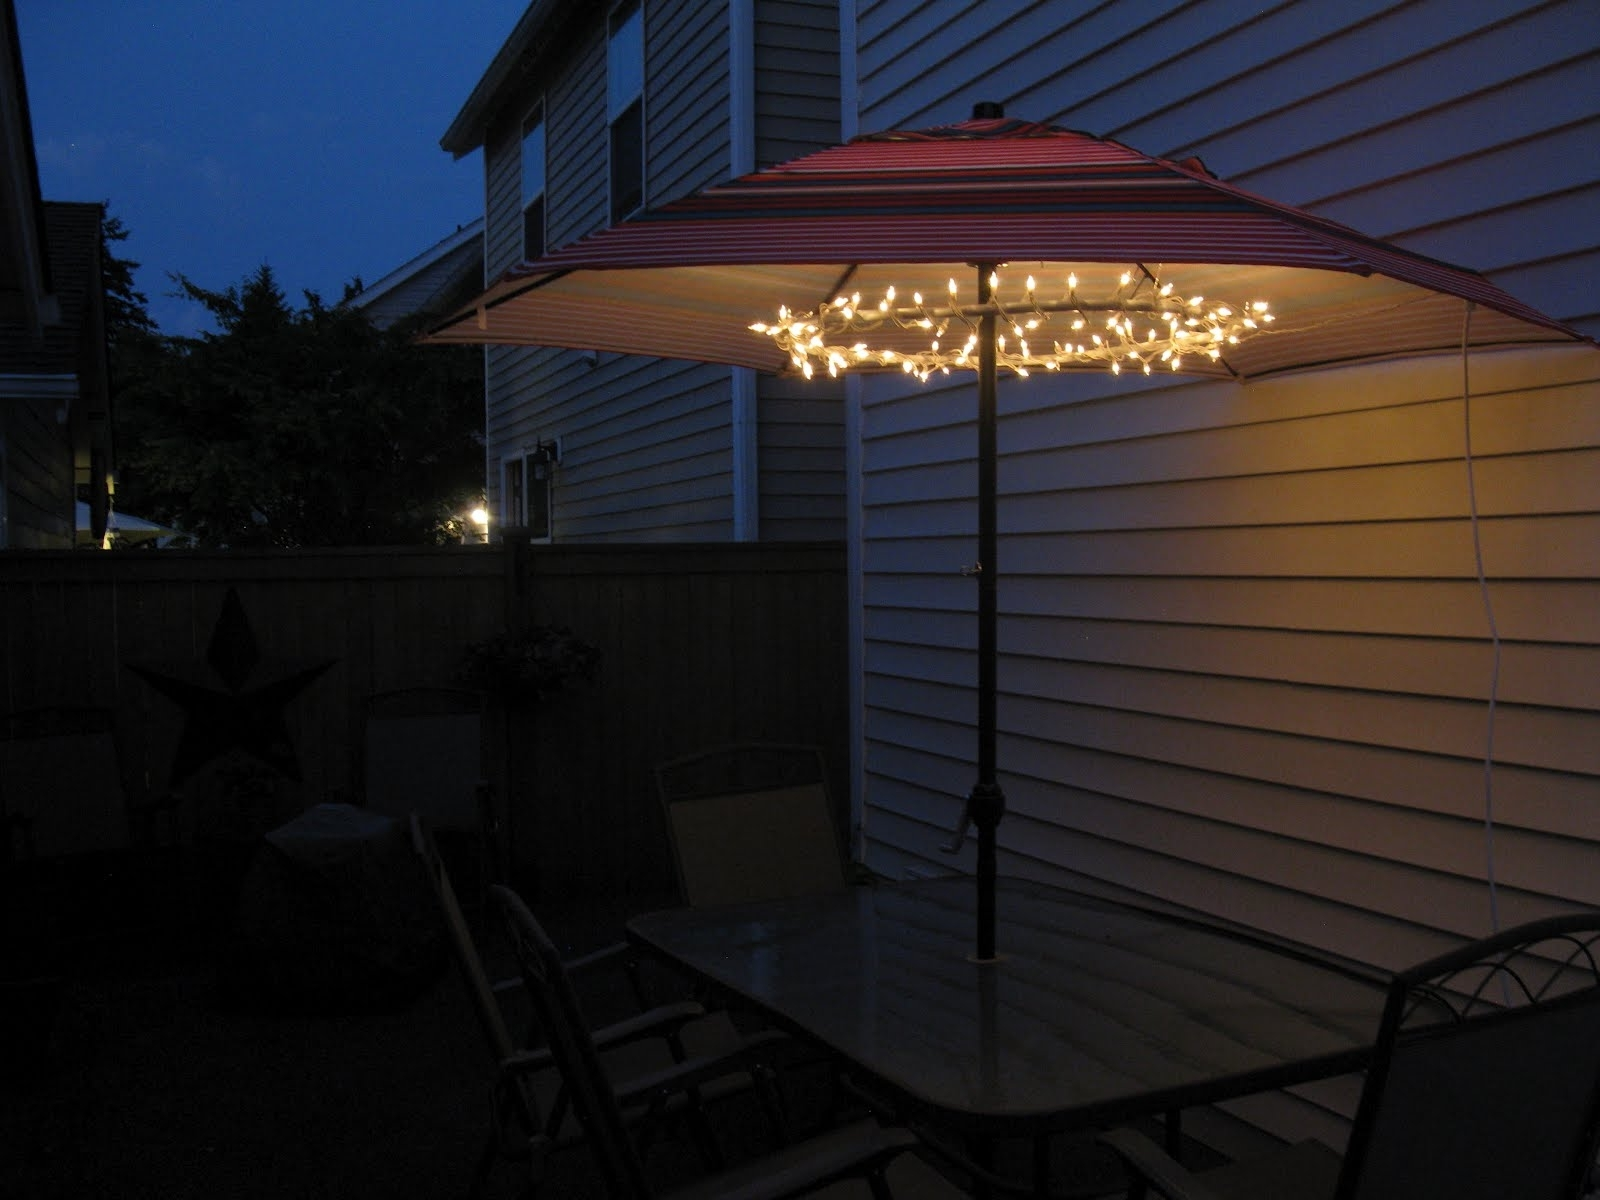 2019 Great Patio Umbrellas With Lights Patio Umbrella Lights For The Pertaining To Outdoor Umbrella Lanterns (Gallery 5 of 20)